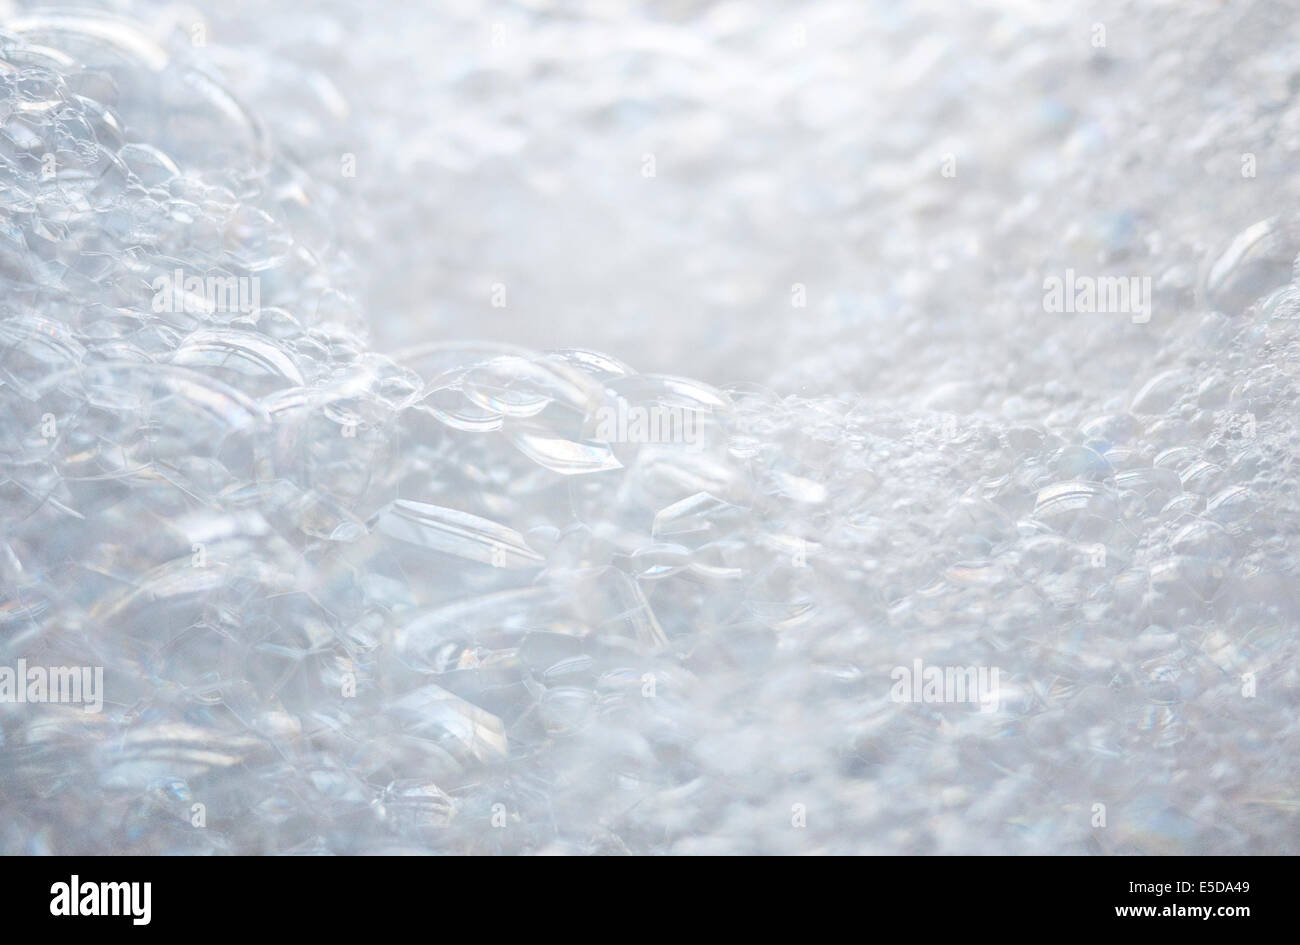 A close up of fluffy white bath bubbles (soap suds). Short depth of field. No people. - Stock Image